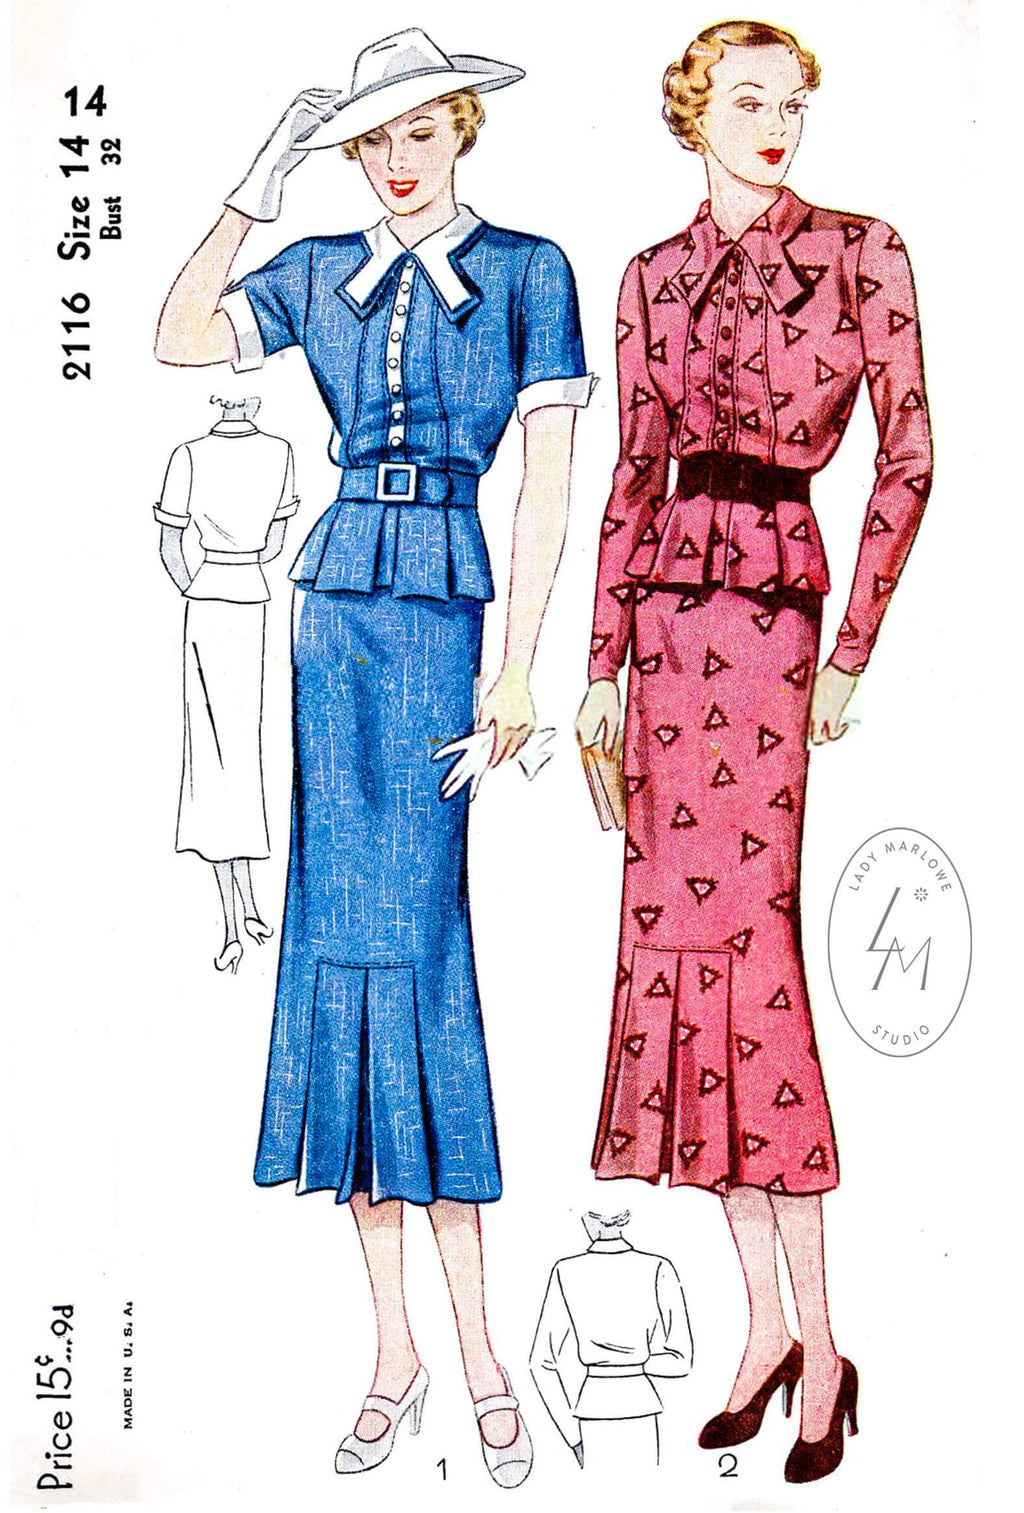 Simplicity 2116 1930s dress suit vintage sewing pattern repoduction